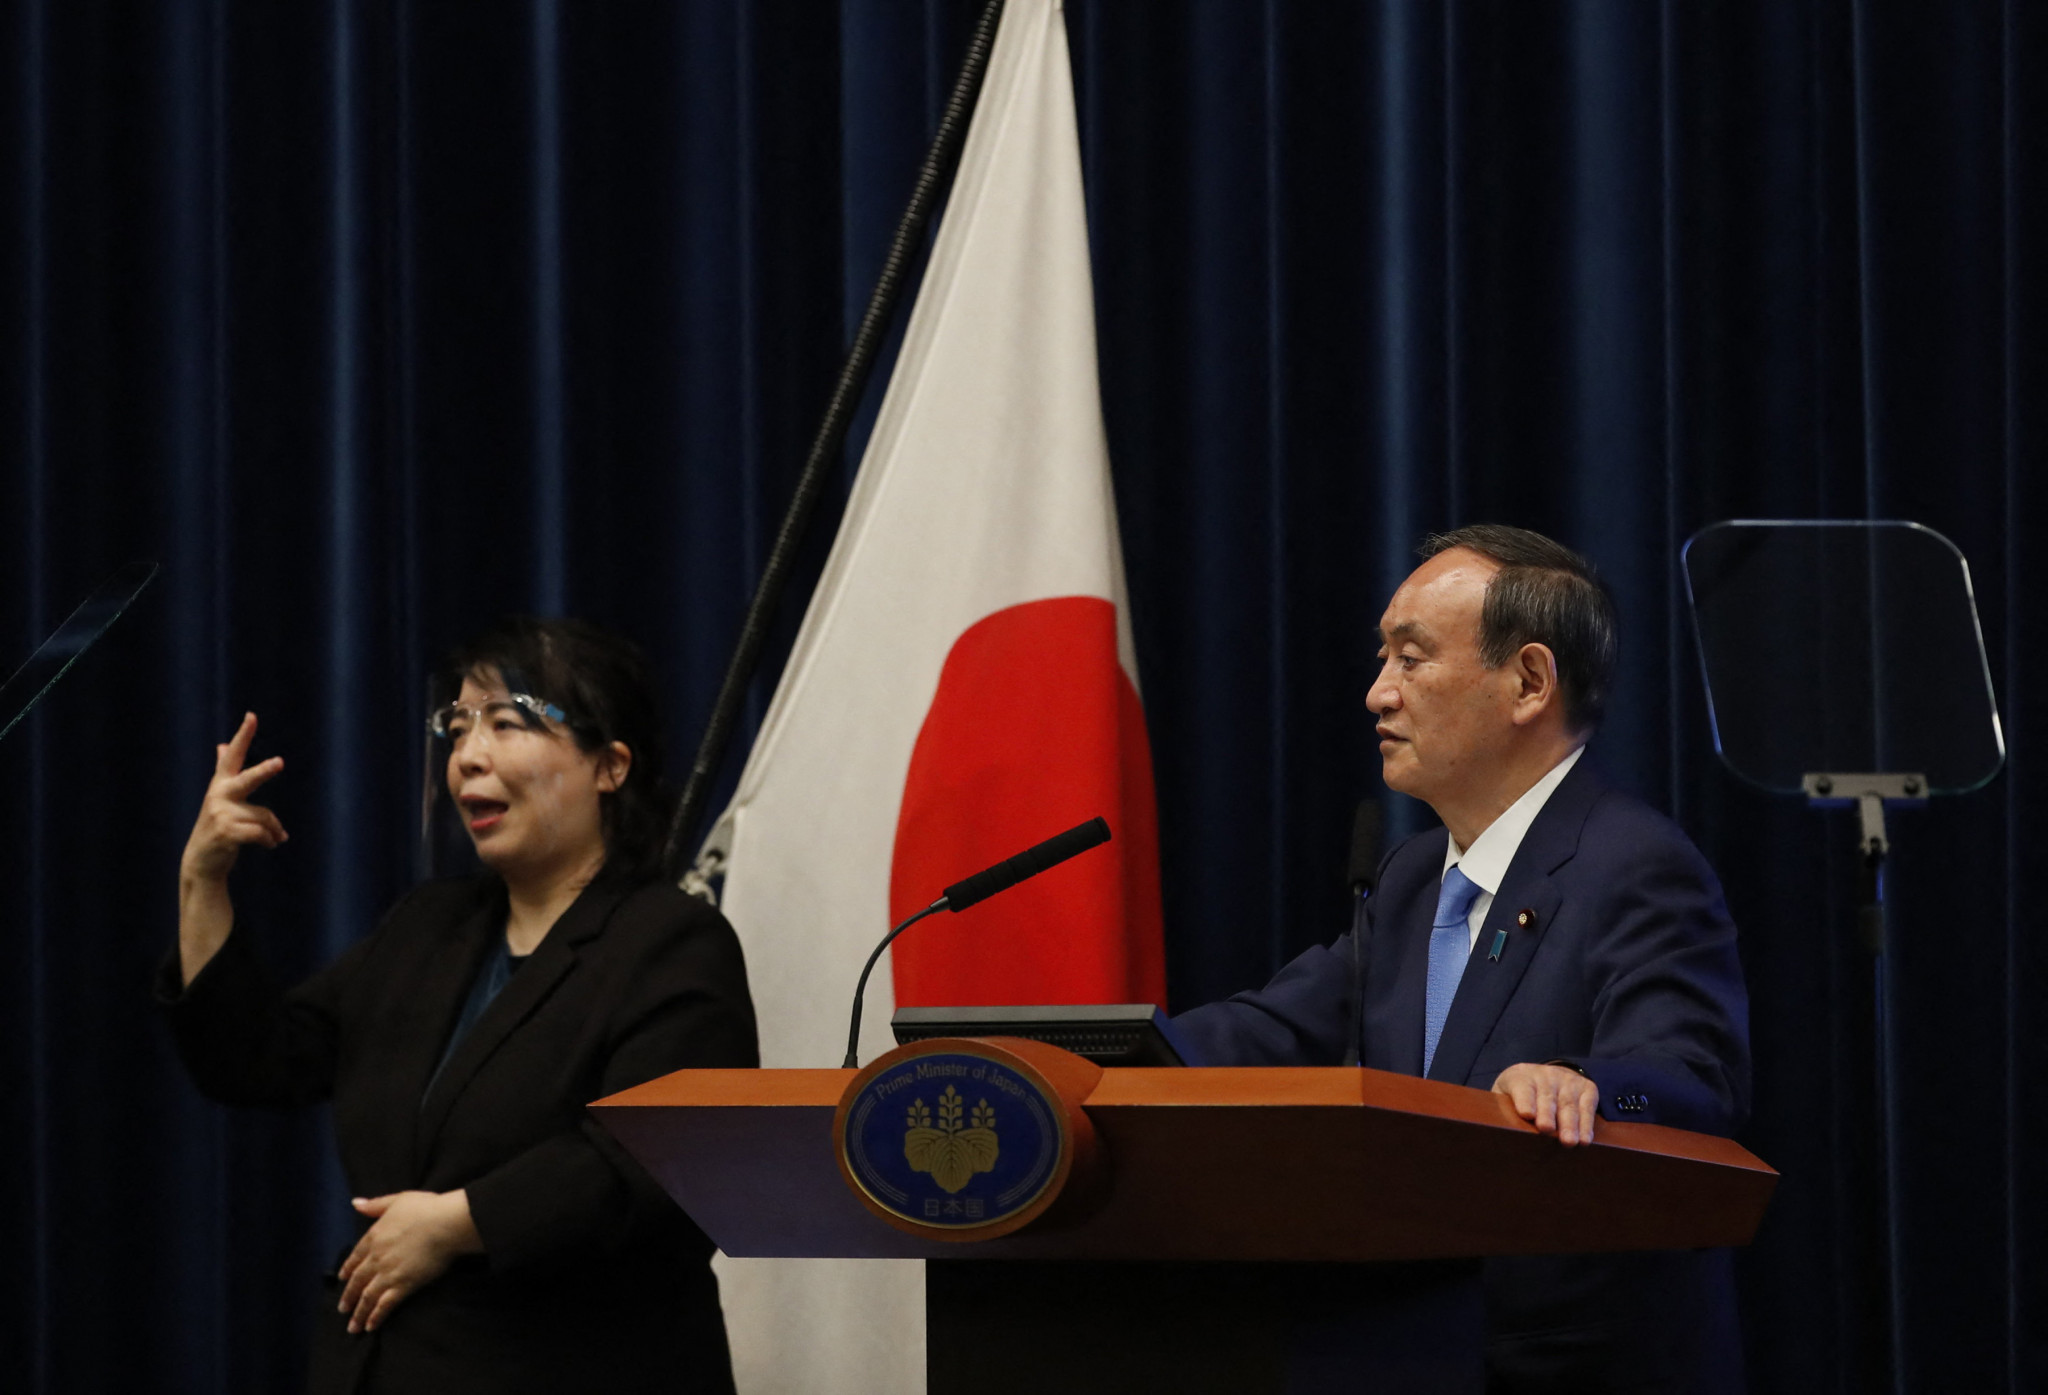 Japan's Prime Minister Yoshihide Suga said restrictions could be tightened if cases increase ©Getty Images